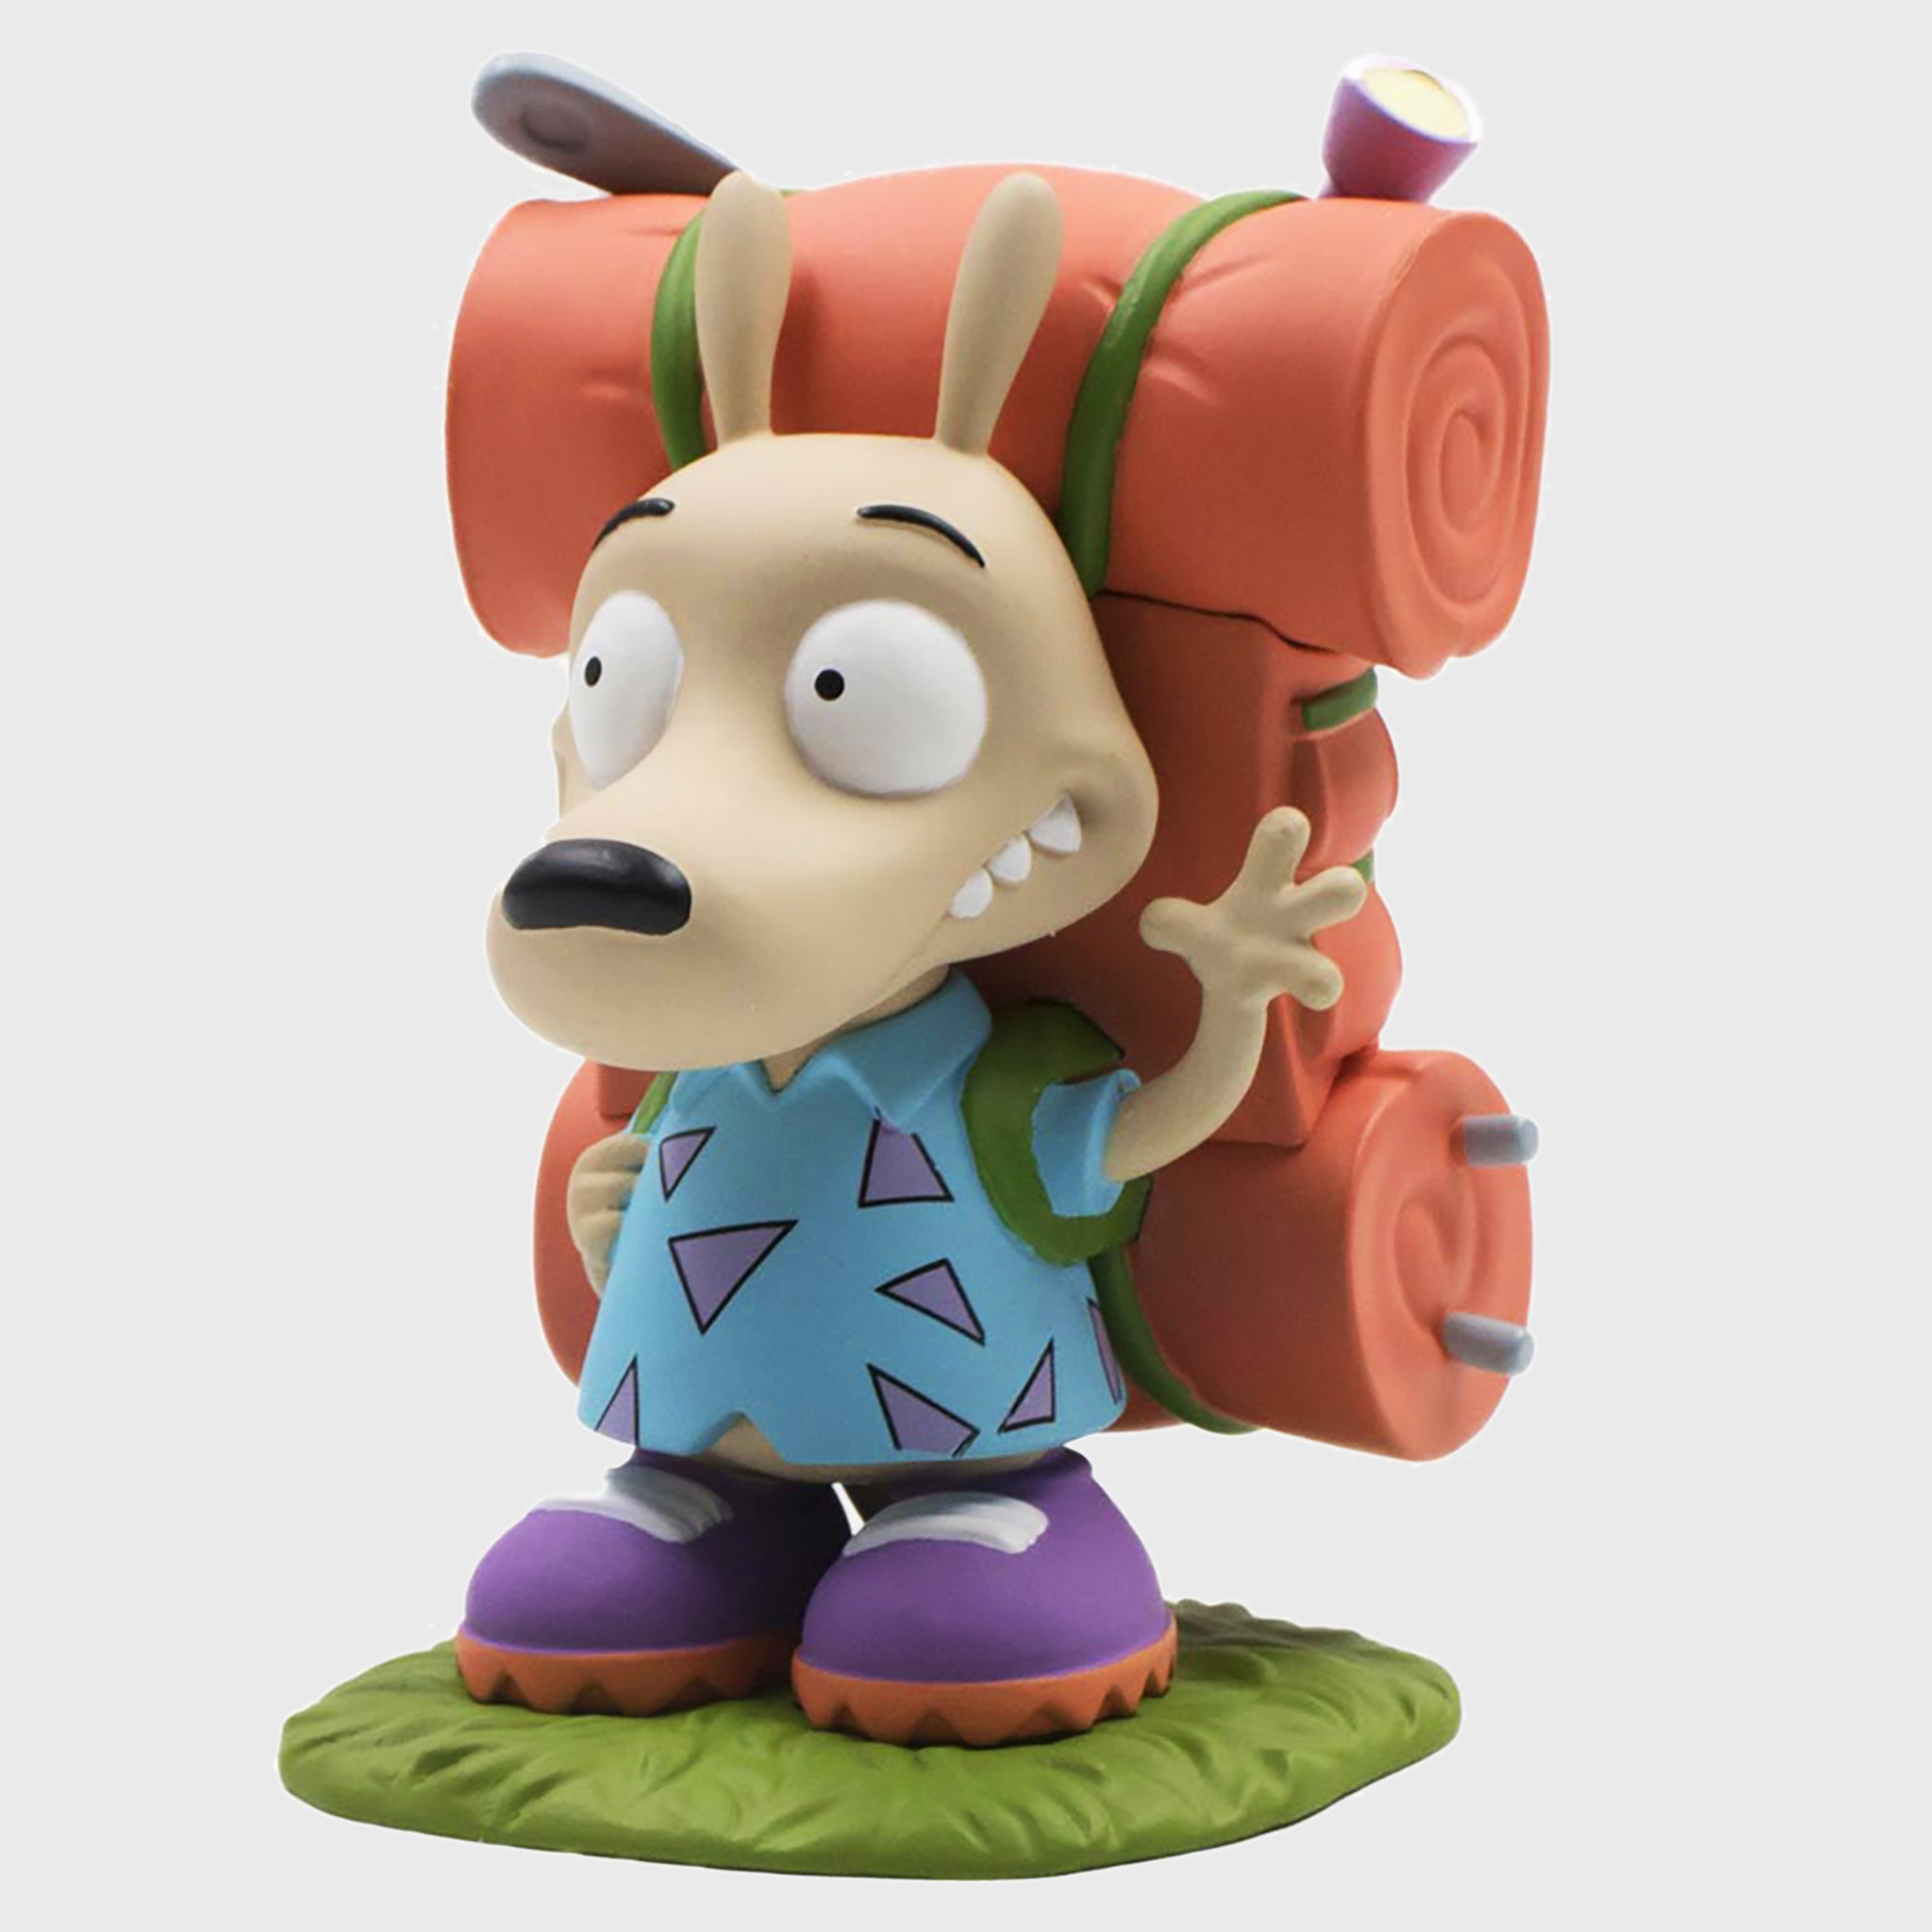 nick box nickelodeon collectible summer vinyl figure rocko's modern life 90s cartoons 90s kids culturefly